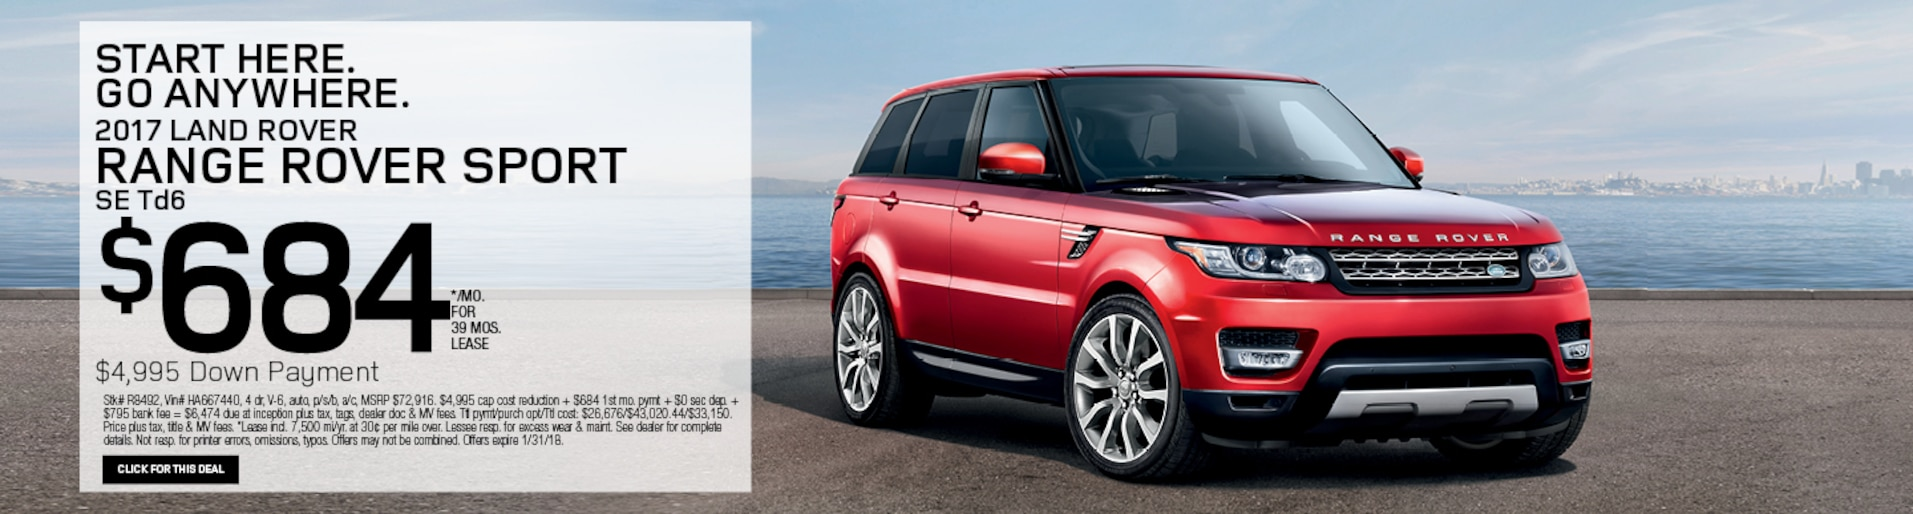 Range Rover Lease Cherry Hill The Most Beautiful Hill Of All Time - Range rover dealer nj